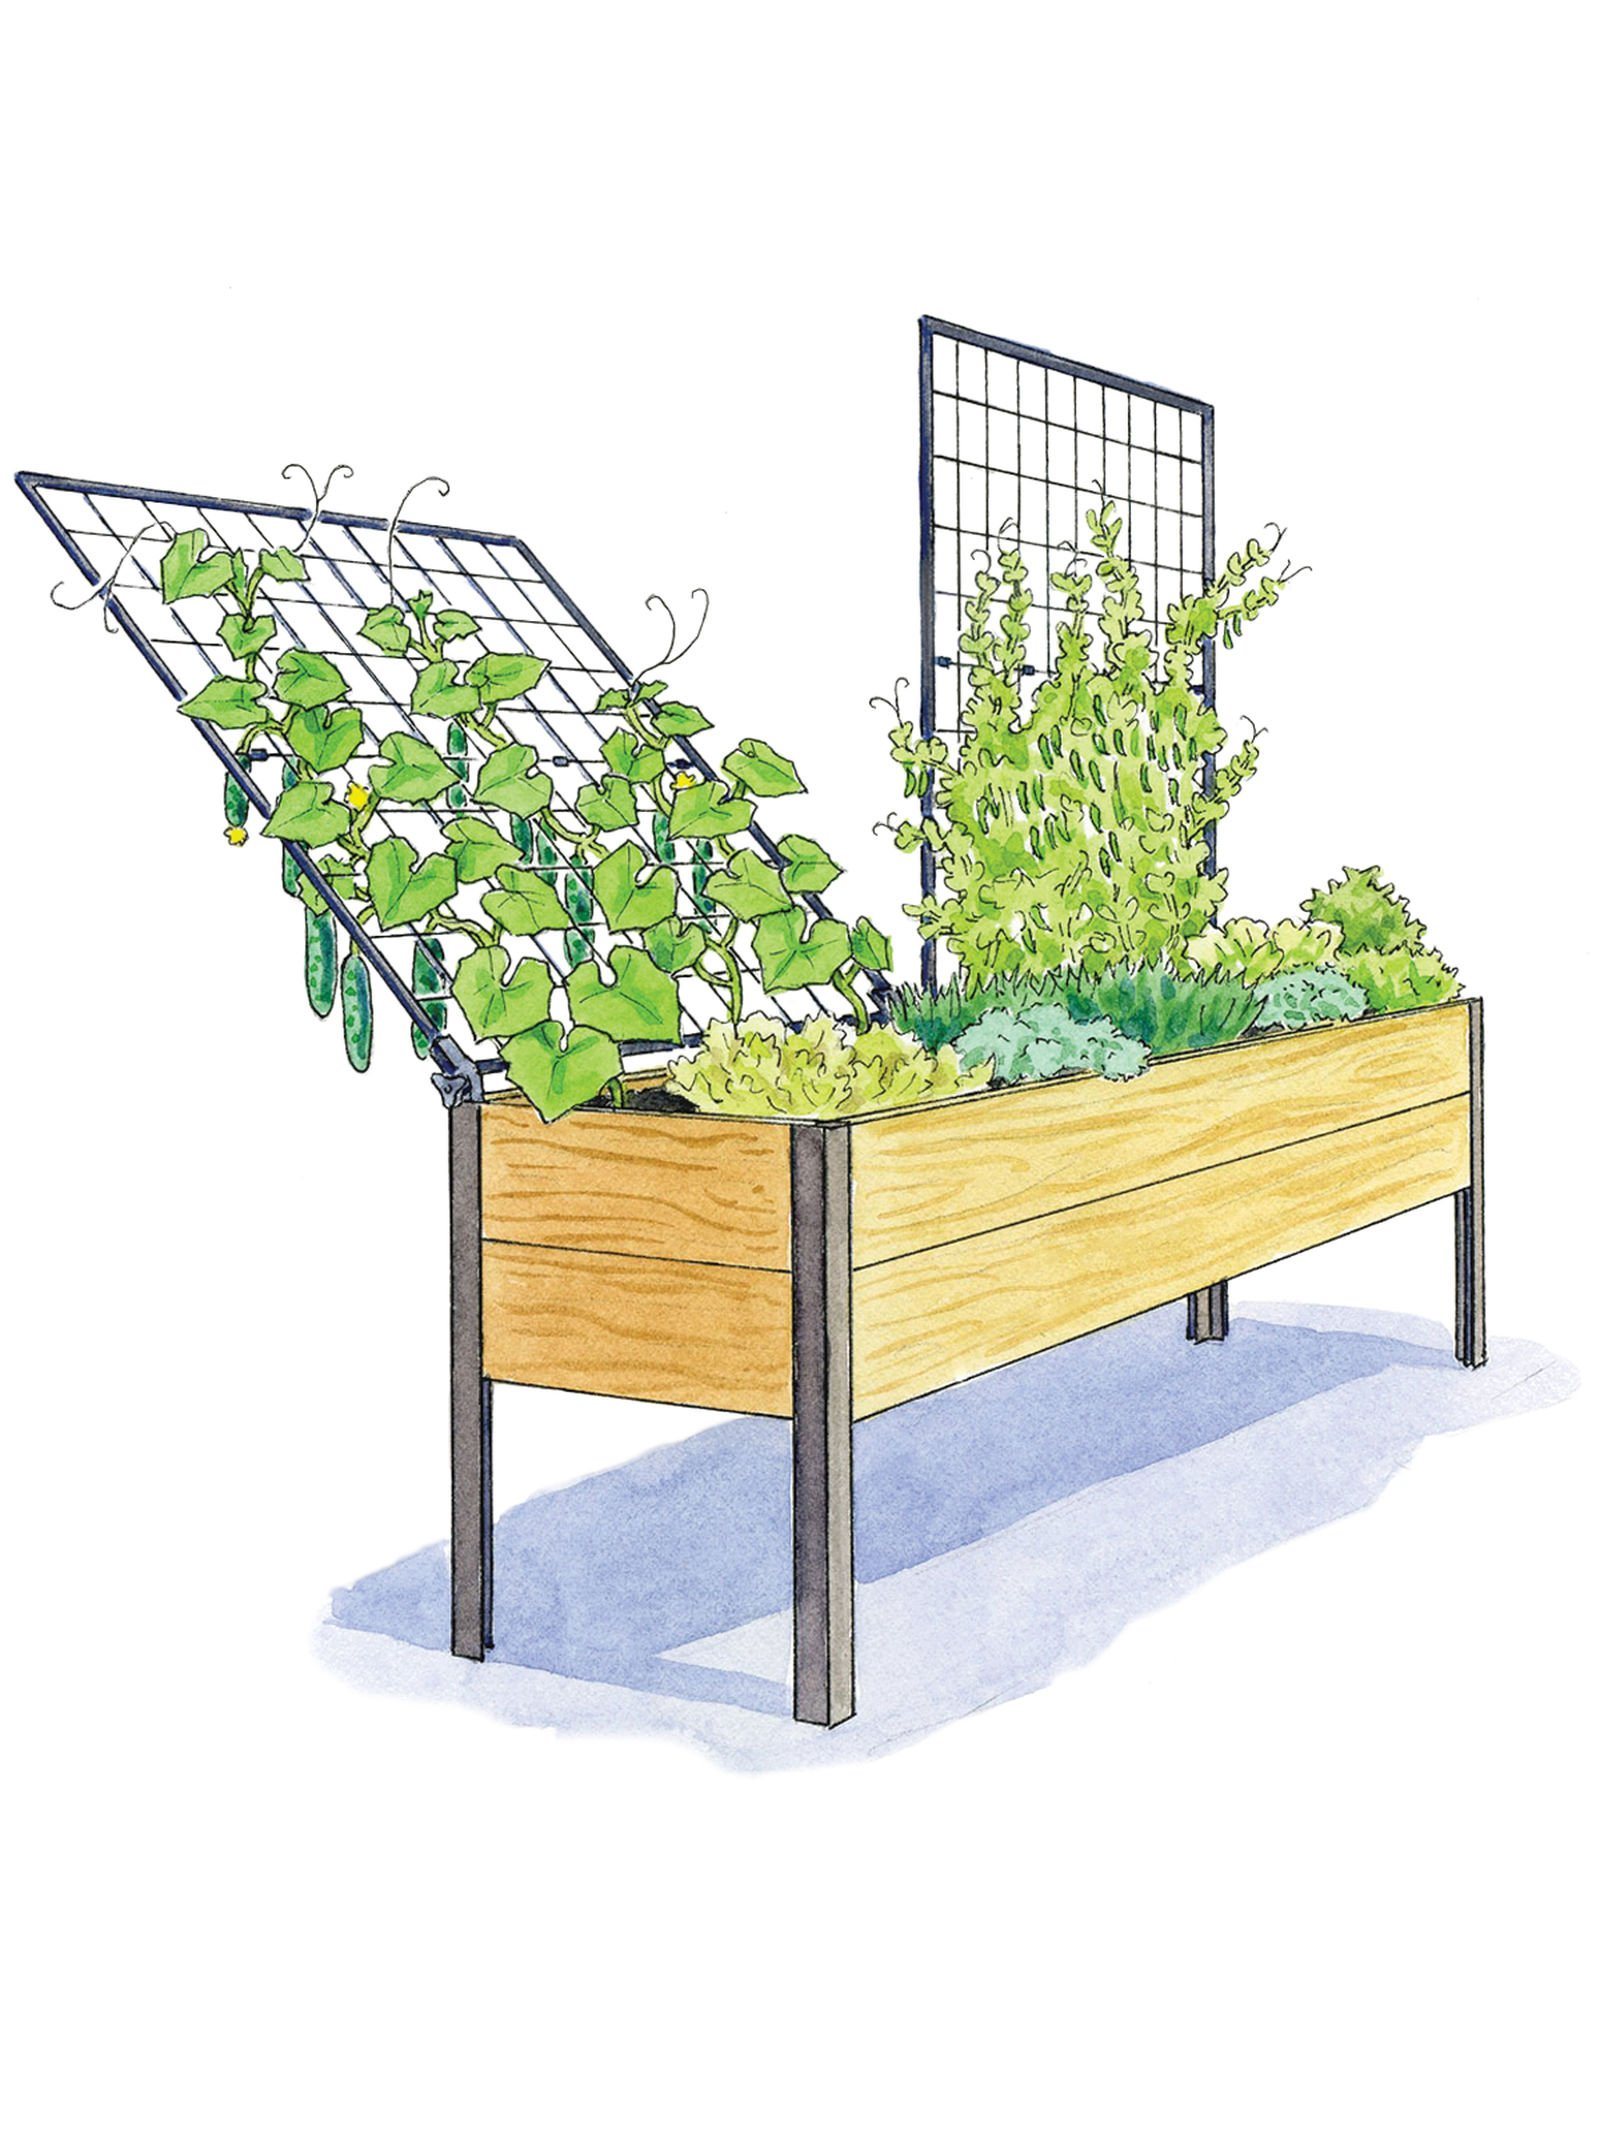 Elevated Cedar Planter Box and Space-Maker Pivoting Trellis Set, 2 x 8